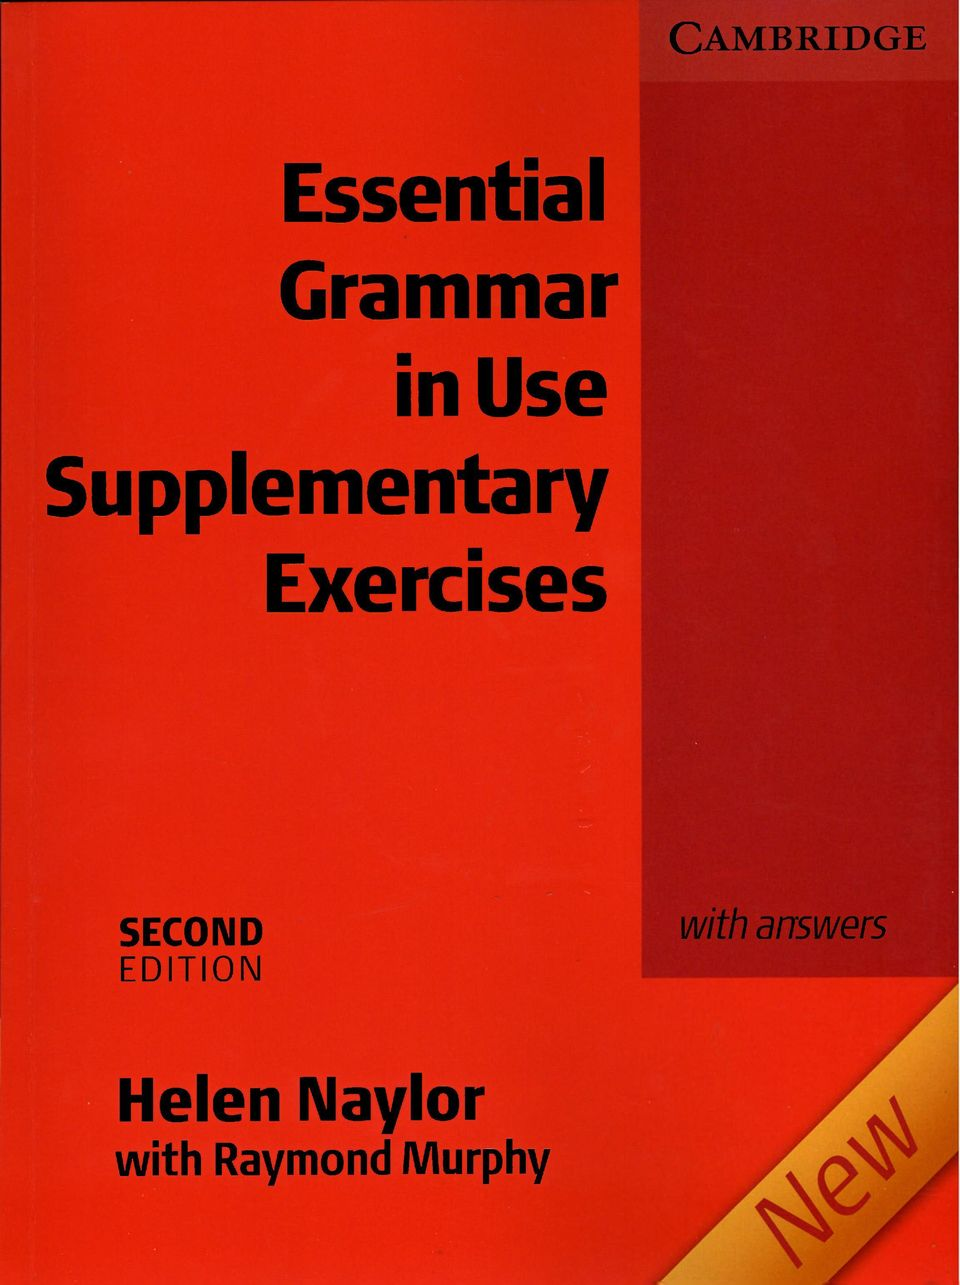 Exercises SECOND EDITION with